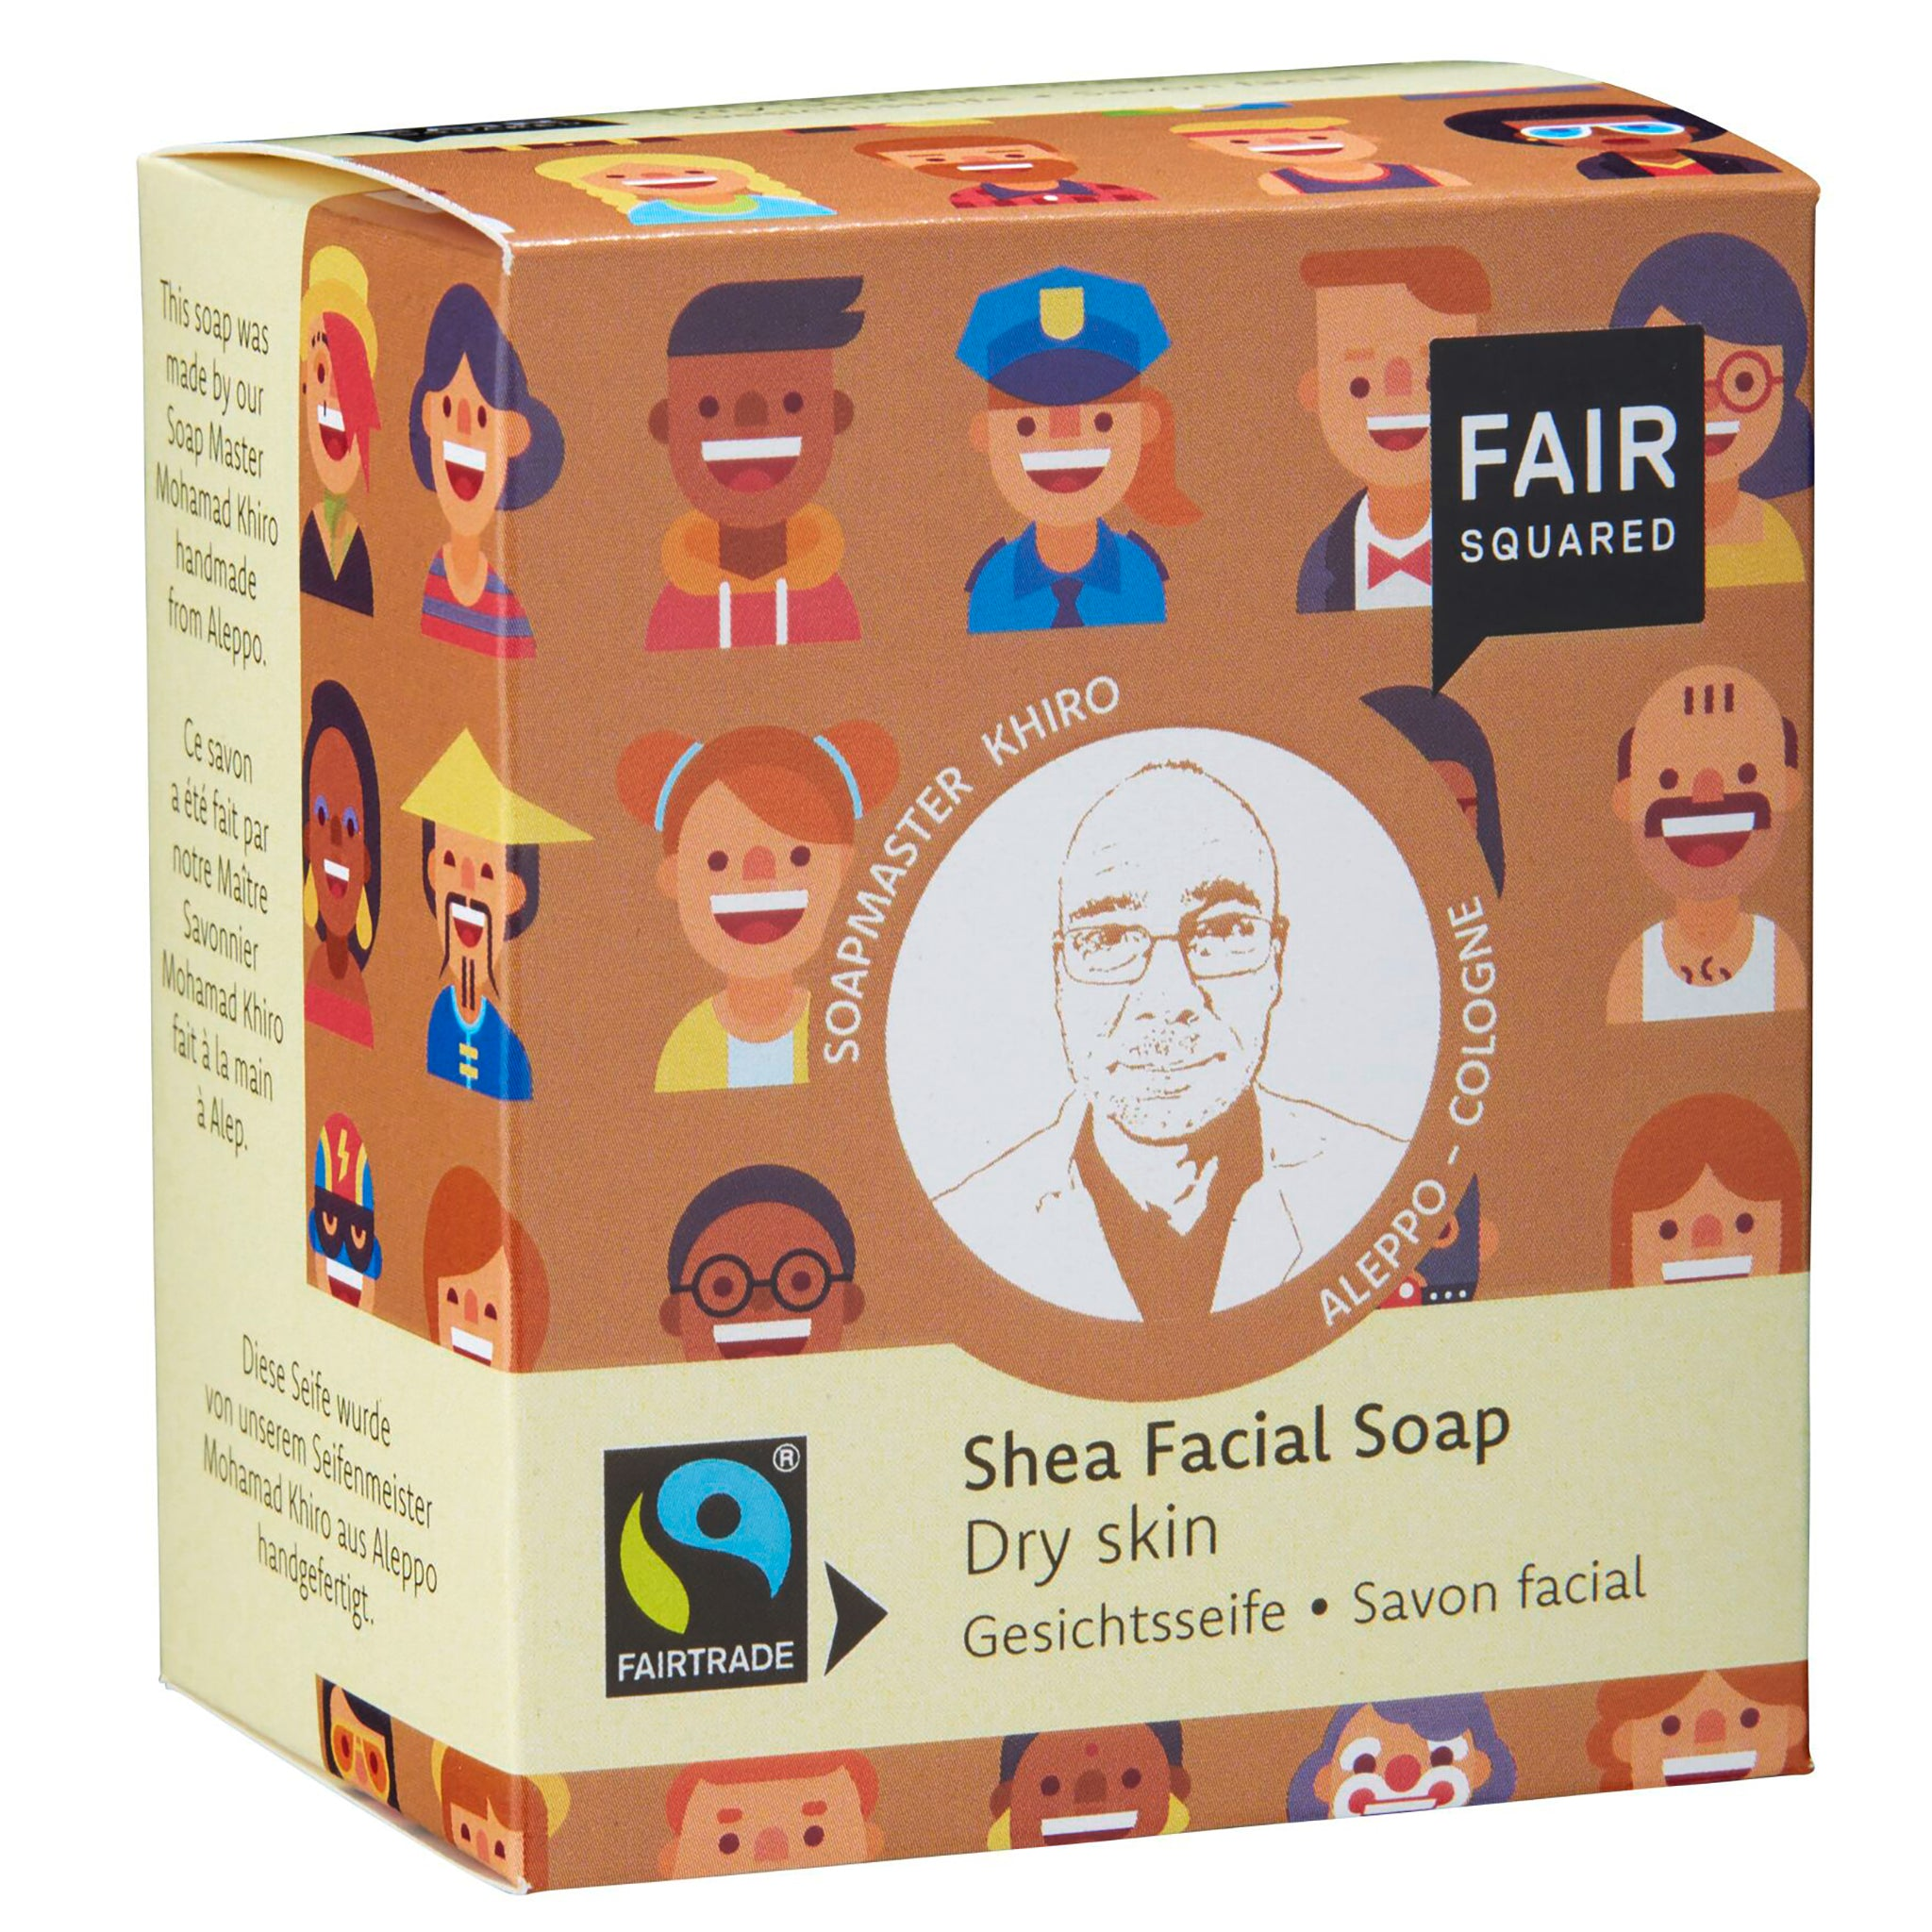 Shea Facial Soap with Cotton Soap Bag - For Dry Skin